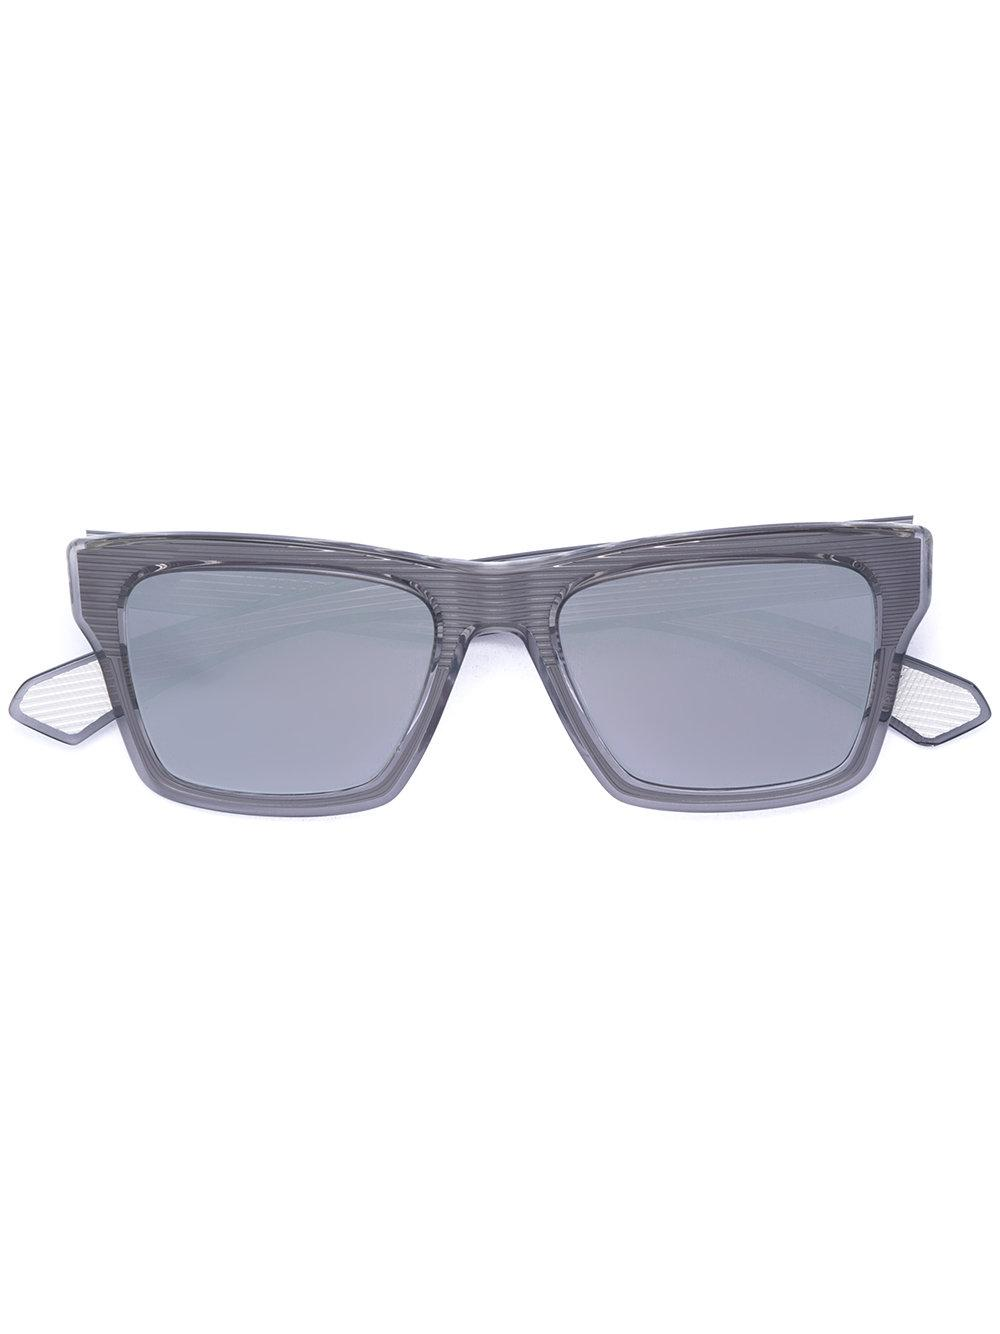 Dita eyewear Insider Two Sunglasses in Gray | Lyst Dita Eyewear